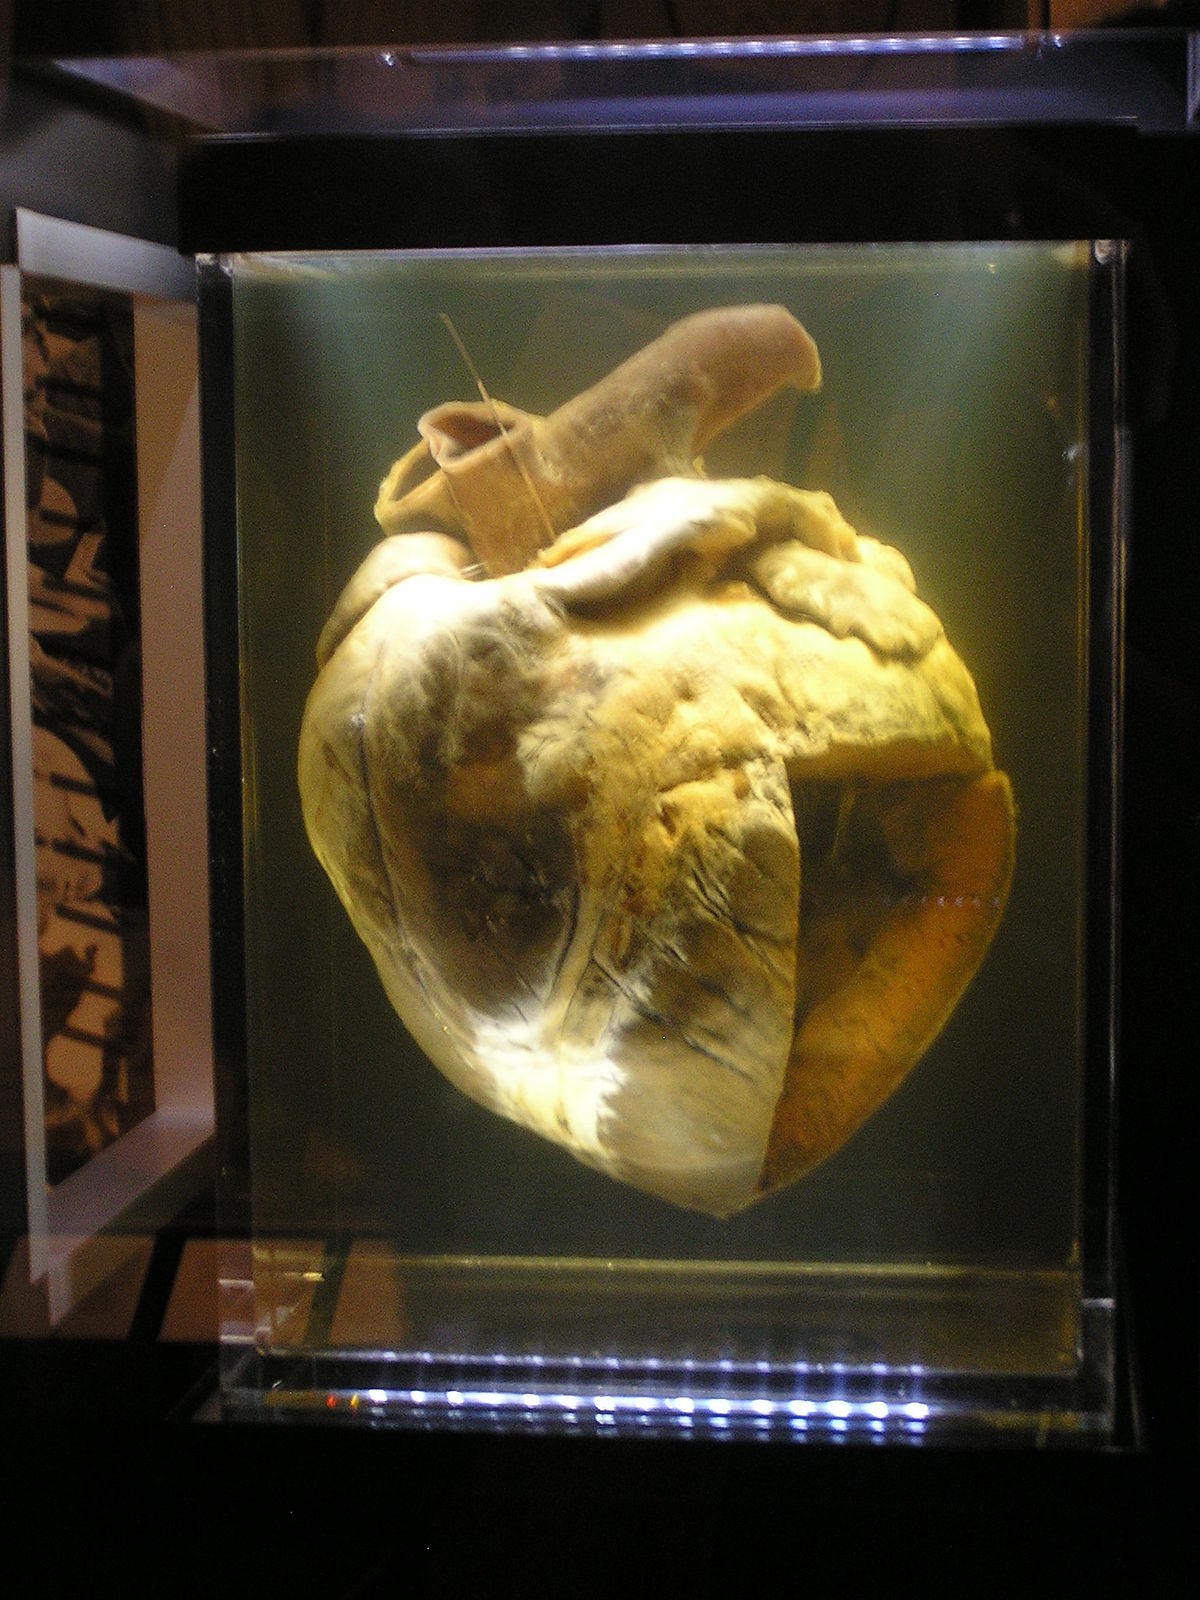 Circulatory system of the horse - Wikipedia